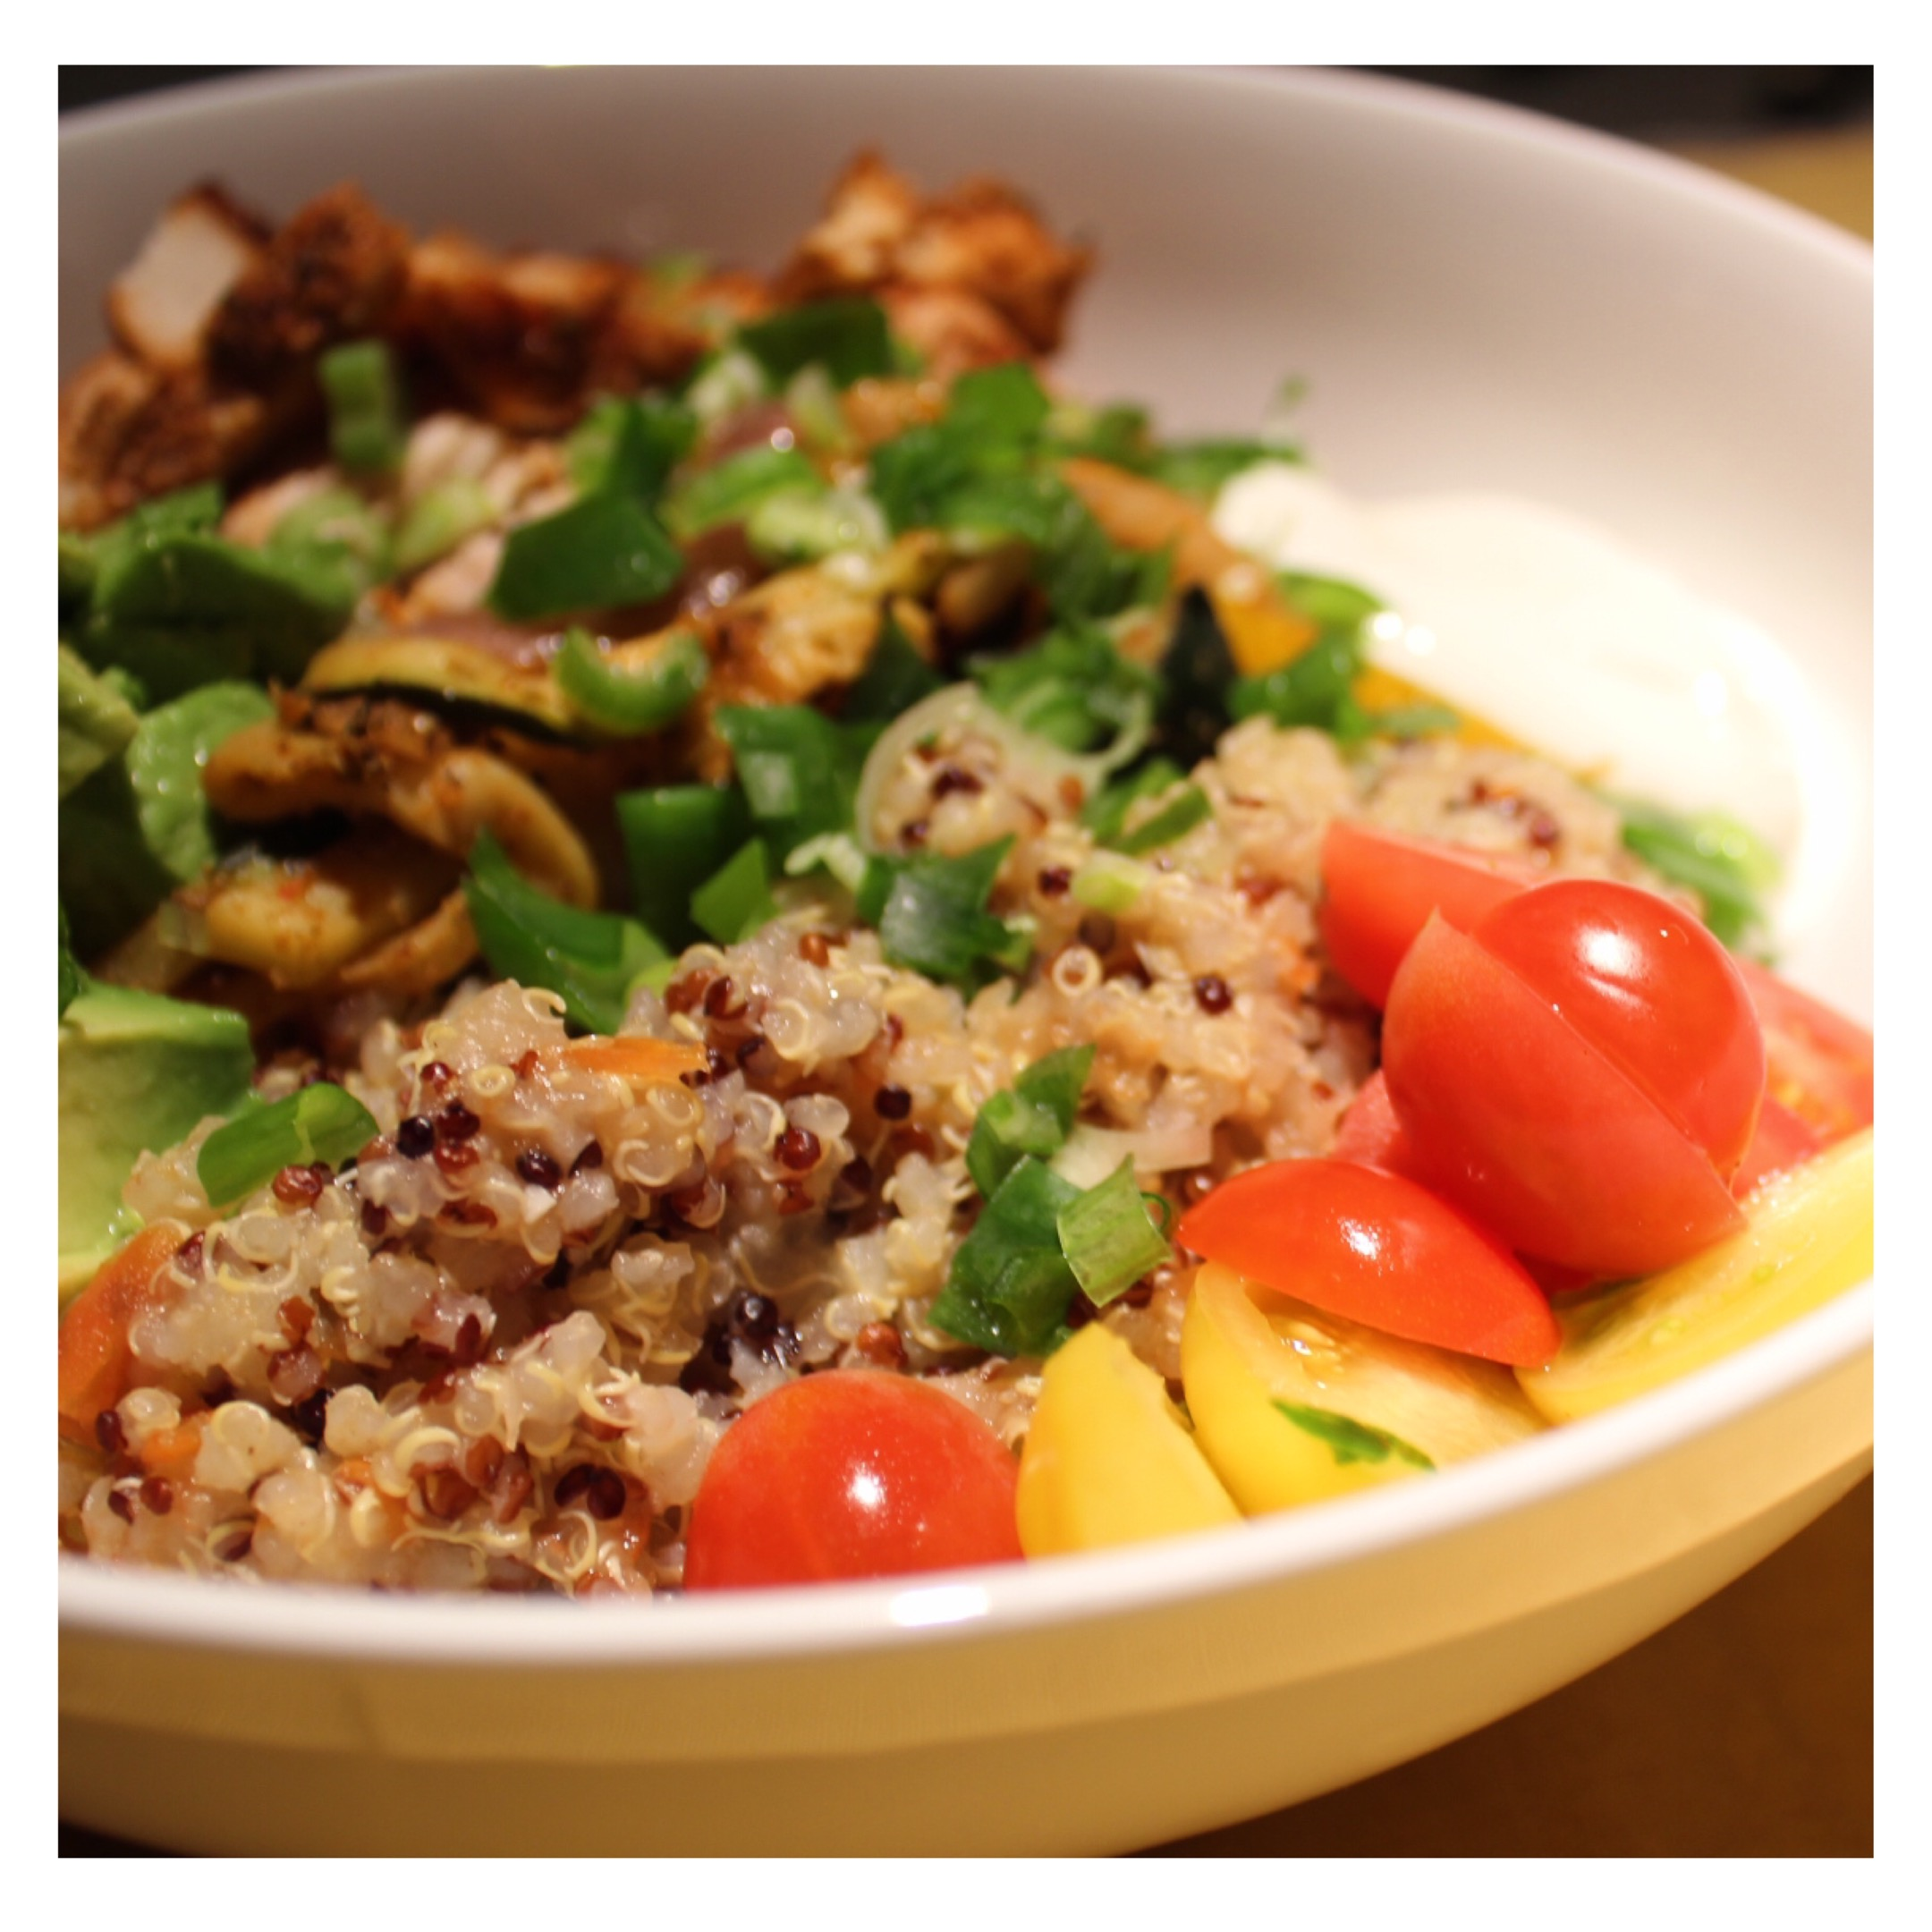 Fiesta Bowl: Chicken, fajita veggie and quinoa